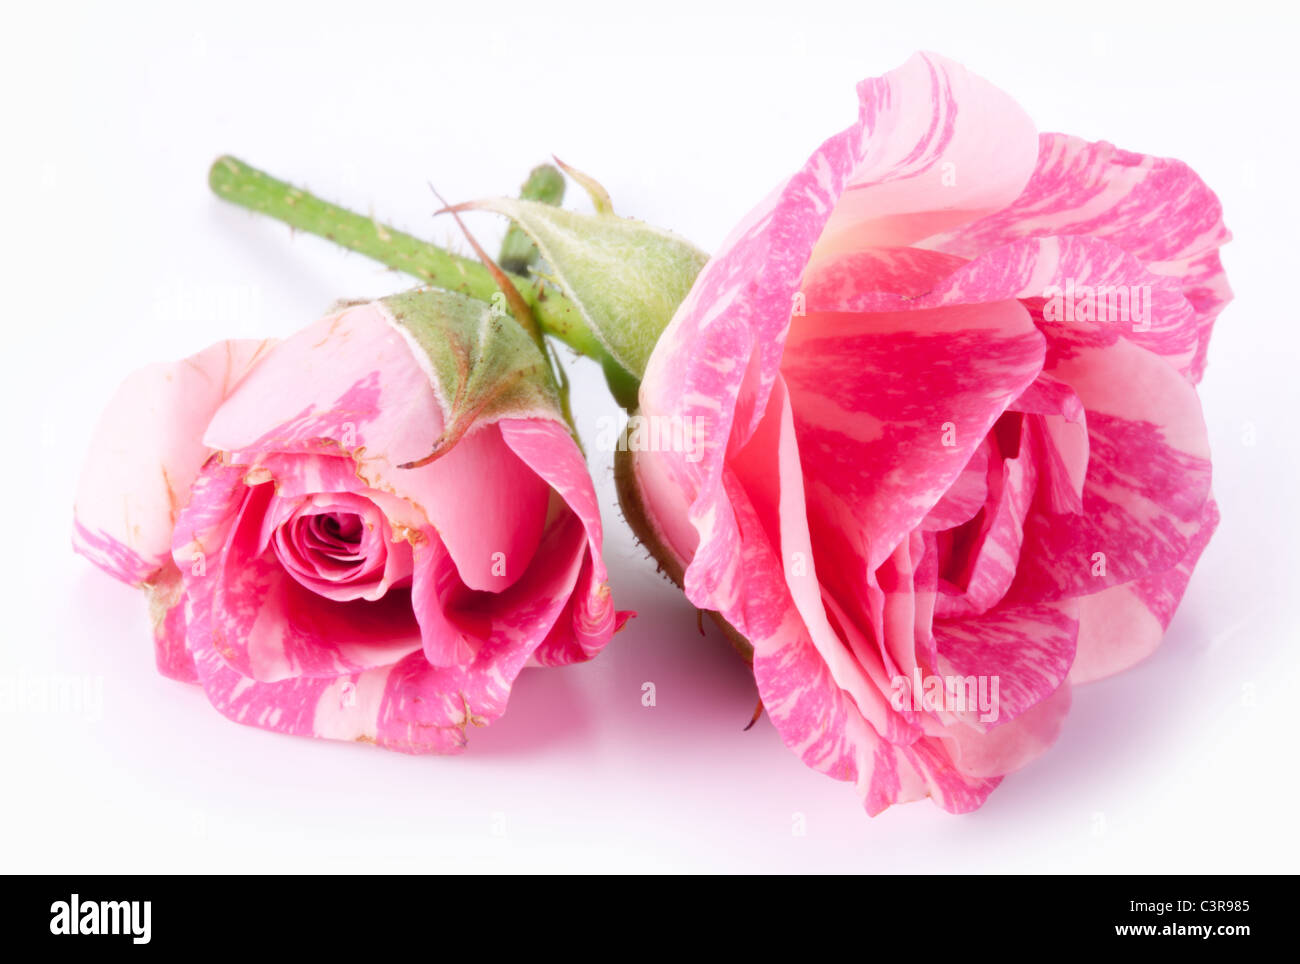 Two perfect roses on a white background. - Stock Image